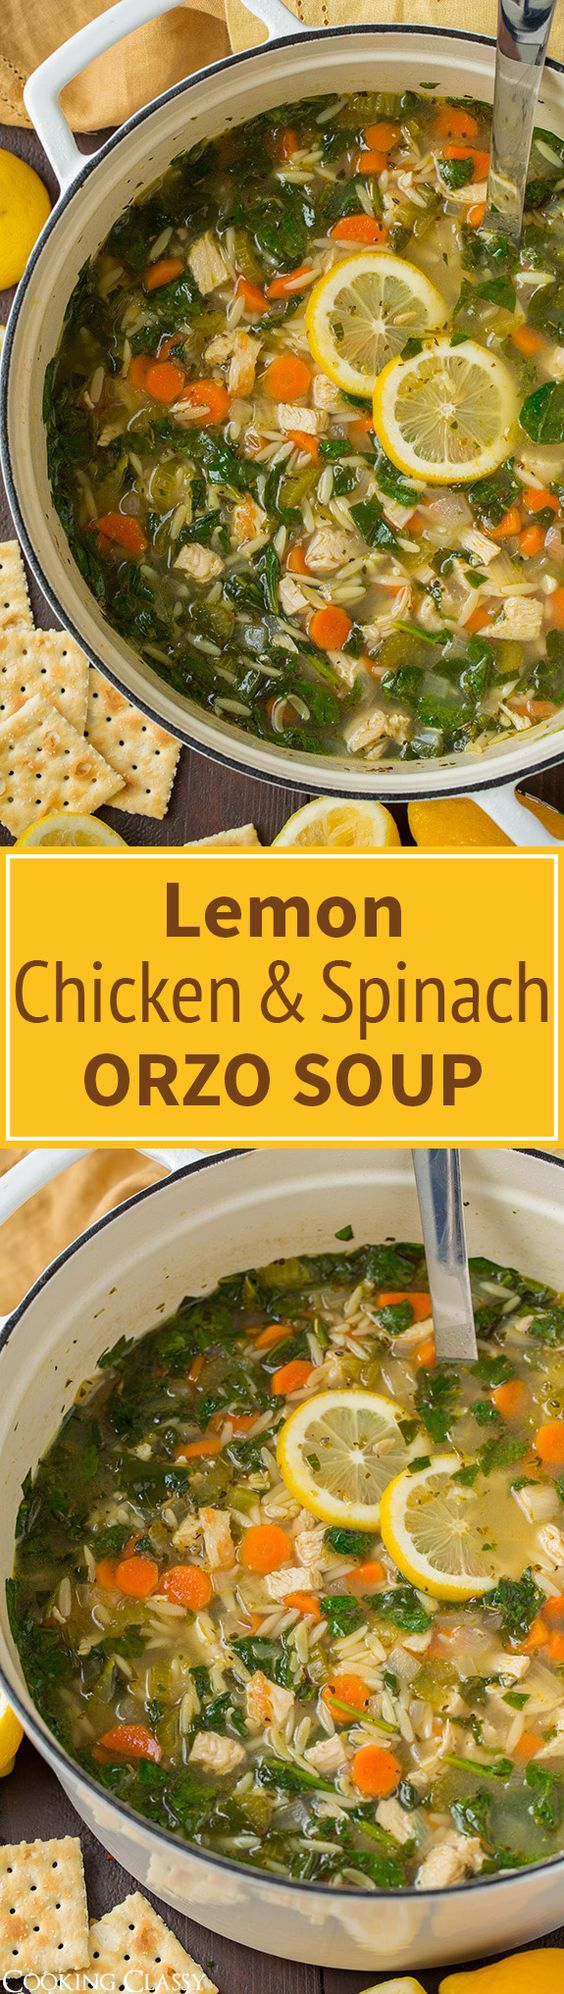 Lemon Chicken and Spinach Orzo Soup - easy, hearty one pot soup ...